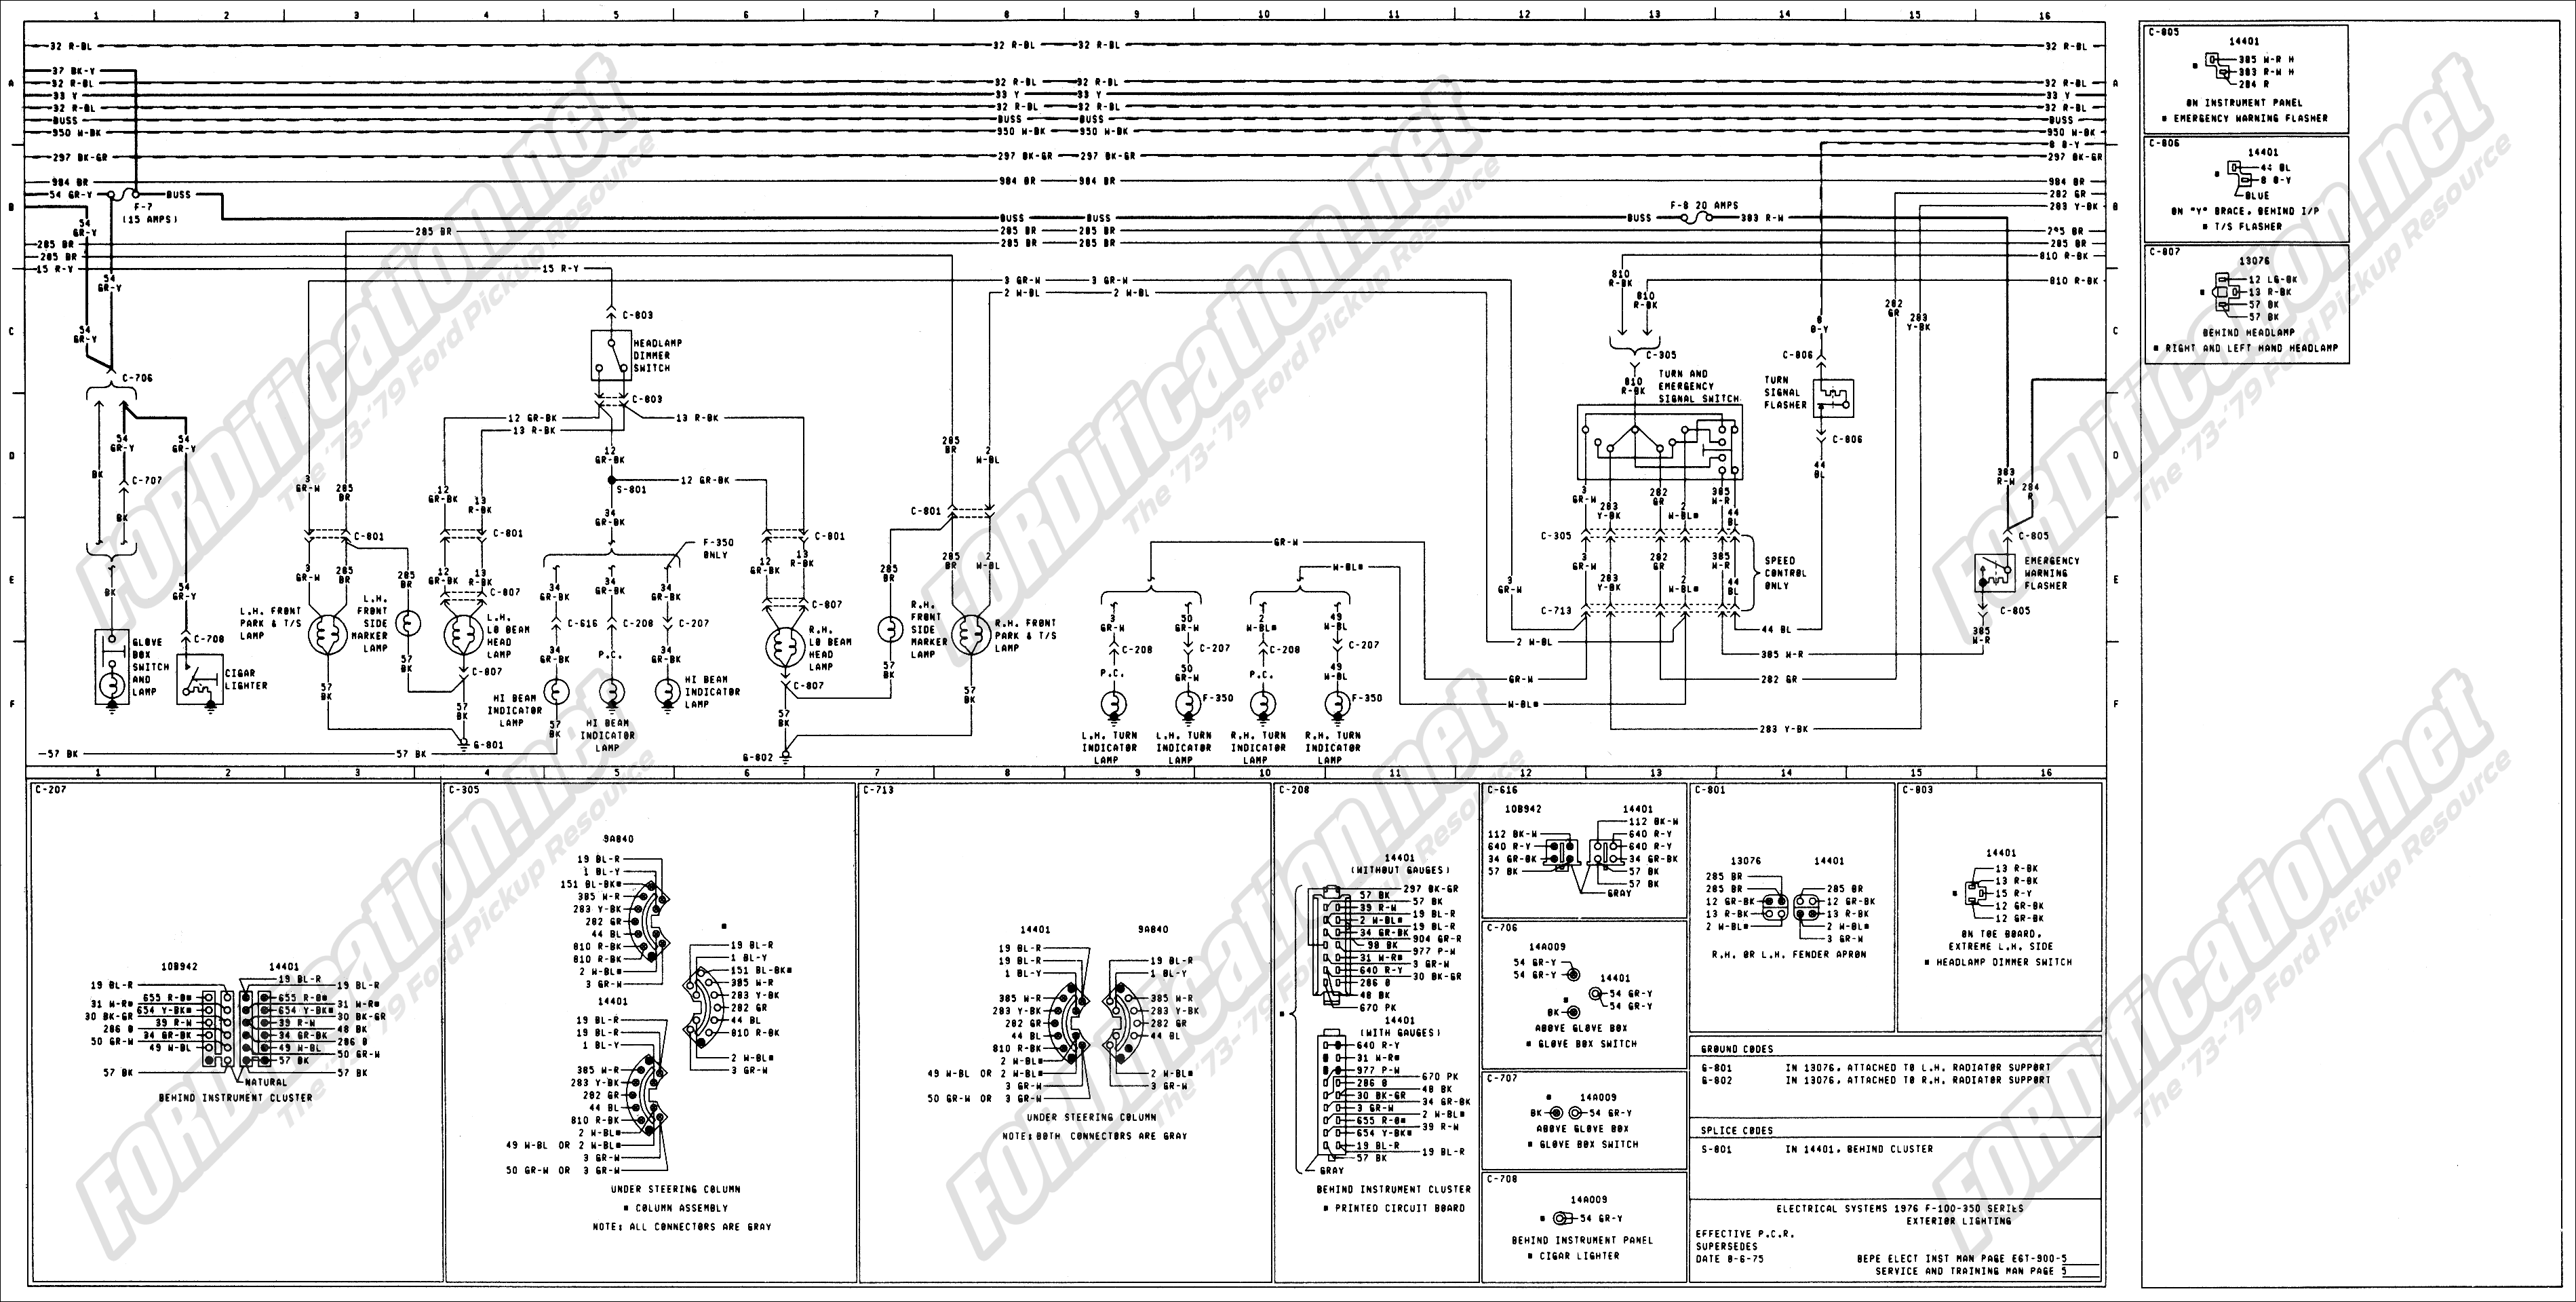 1973 1979 ford truck wiring diagrams \u0026 schematics fordification net 1996 Ford F-150 Wiring Diagram 1978 Ford F 150 Ignition System Wiring Diagram #16